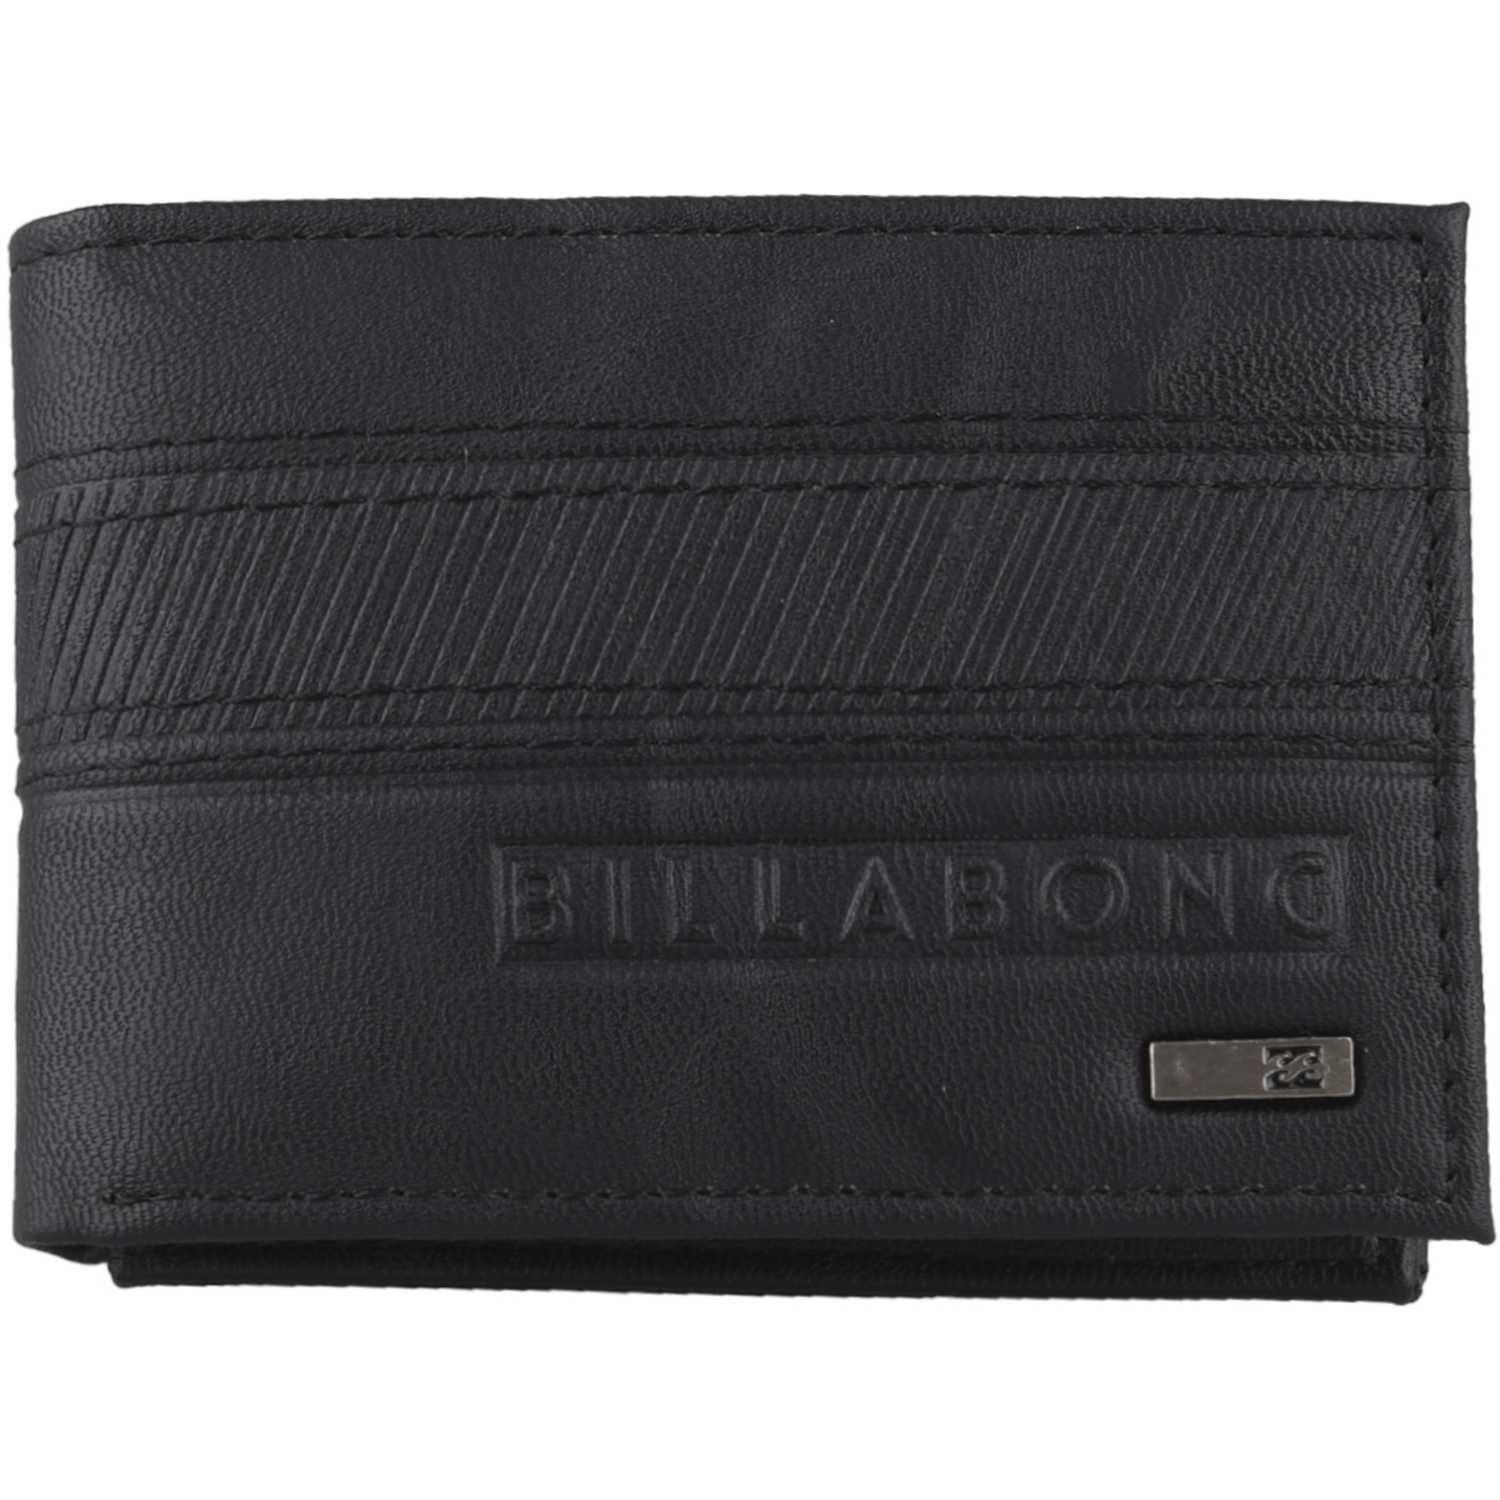 d0677db13 Billetera de Hombre Billabong Negro vacant wallet | platanitos.com